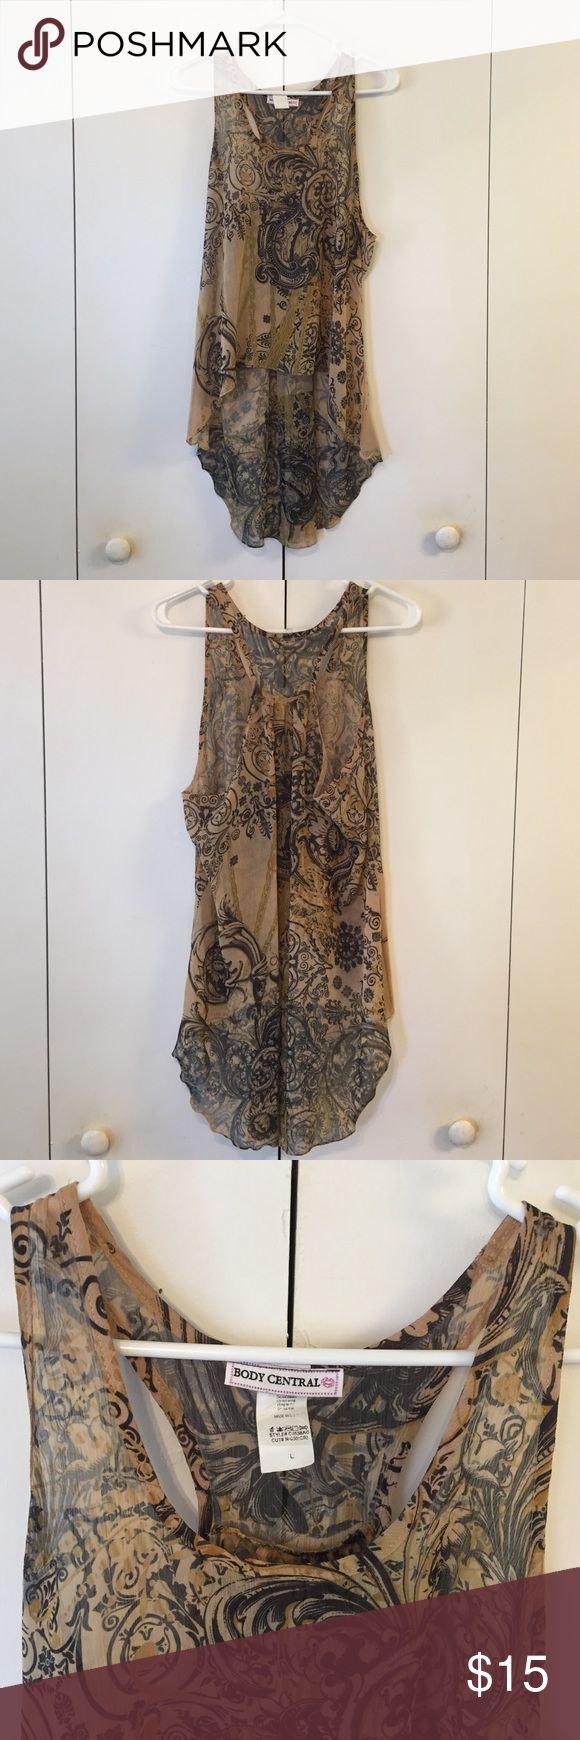 Asymmetrical sleeves top beautiful sleeves slightly sheer top with asymmetrical bottom ( longer in the back than the front ) earthy tan and olive tones with black paisley style print. I absolutely love this top and have been holding on to it , but unfortunately, it does not accommodate the twins if you know what I mean ladies!! Time to let go!!! 😩 Tops Tunics